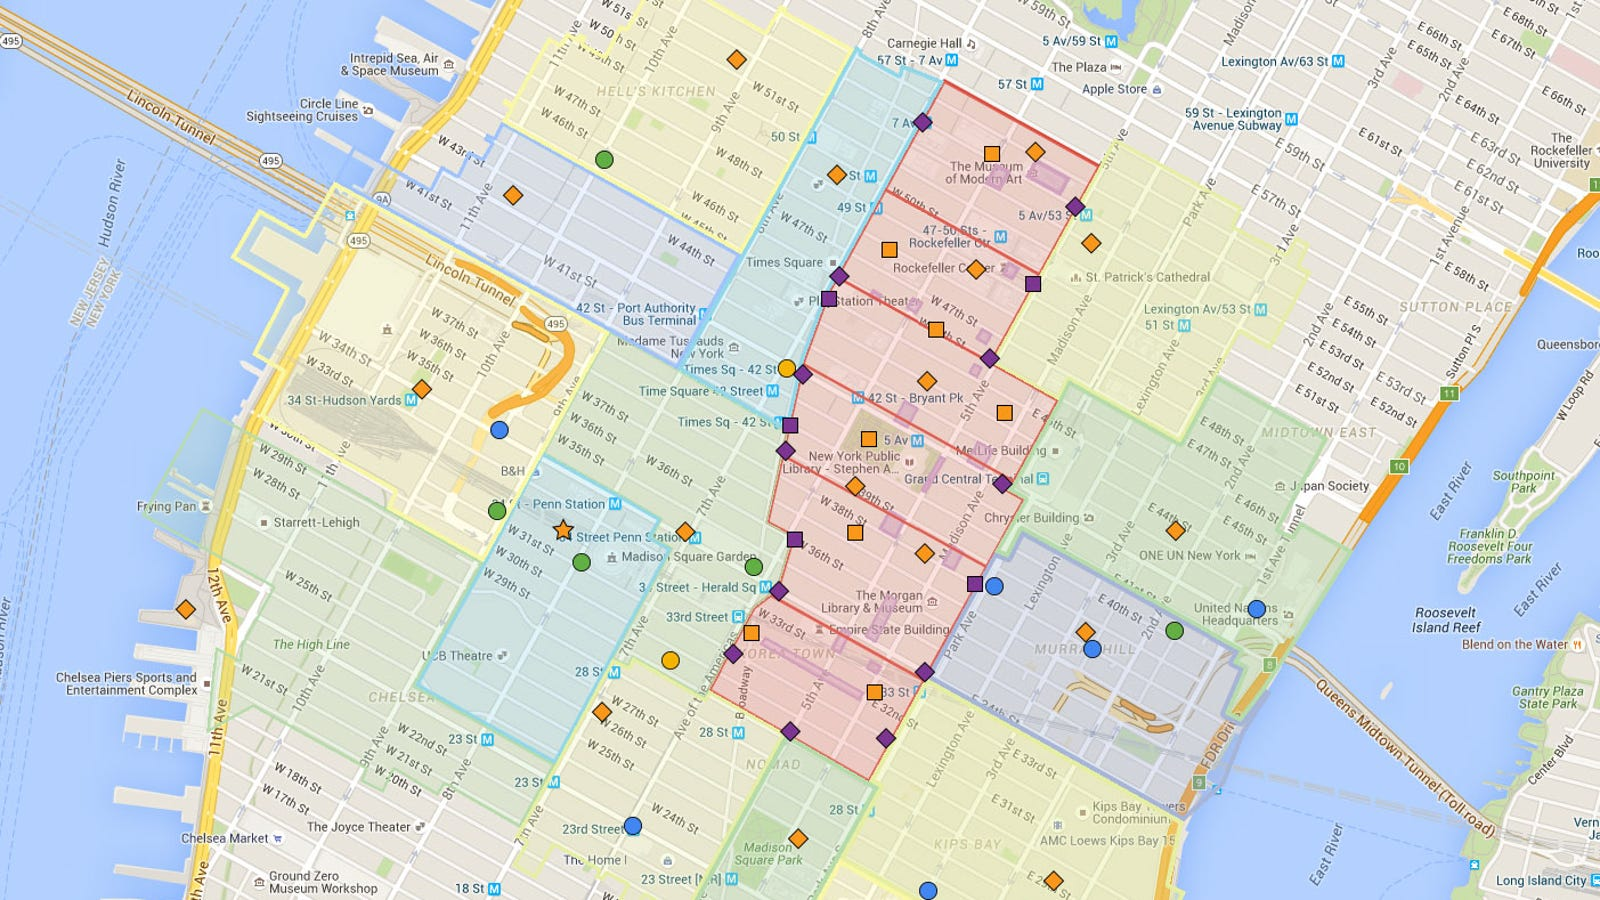 Map Of New York Sites.The Division S Nyc Vs Google Maps Nyc